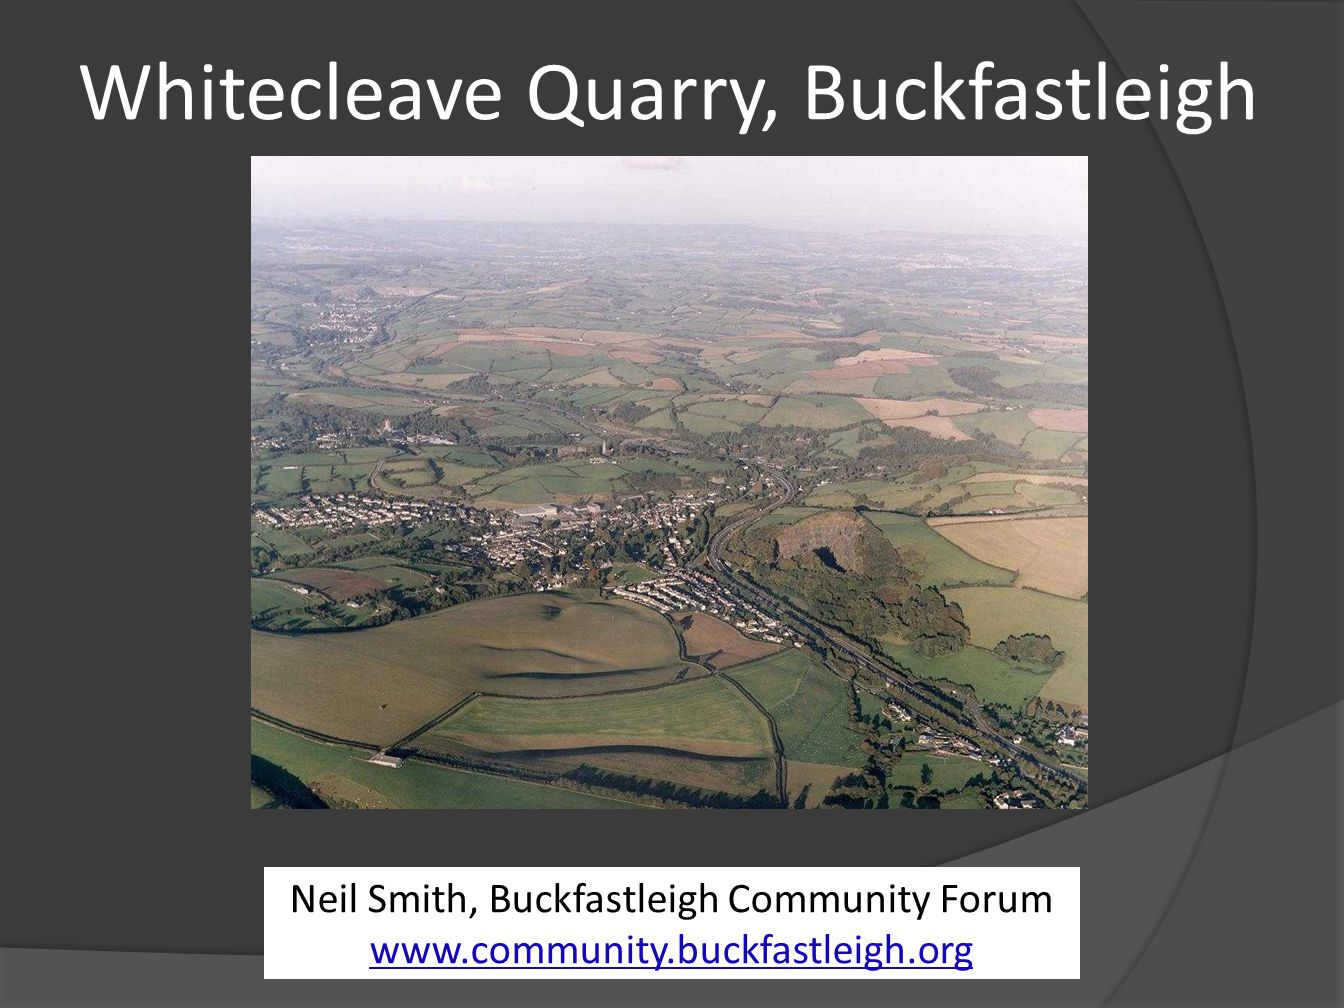 Whitecleave Quarry, Buckfastleigh Neil Smith, Buckfastleigh Community Forum www.community.buckfastleigh.org